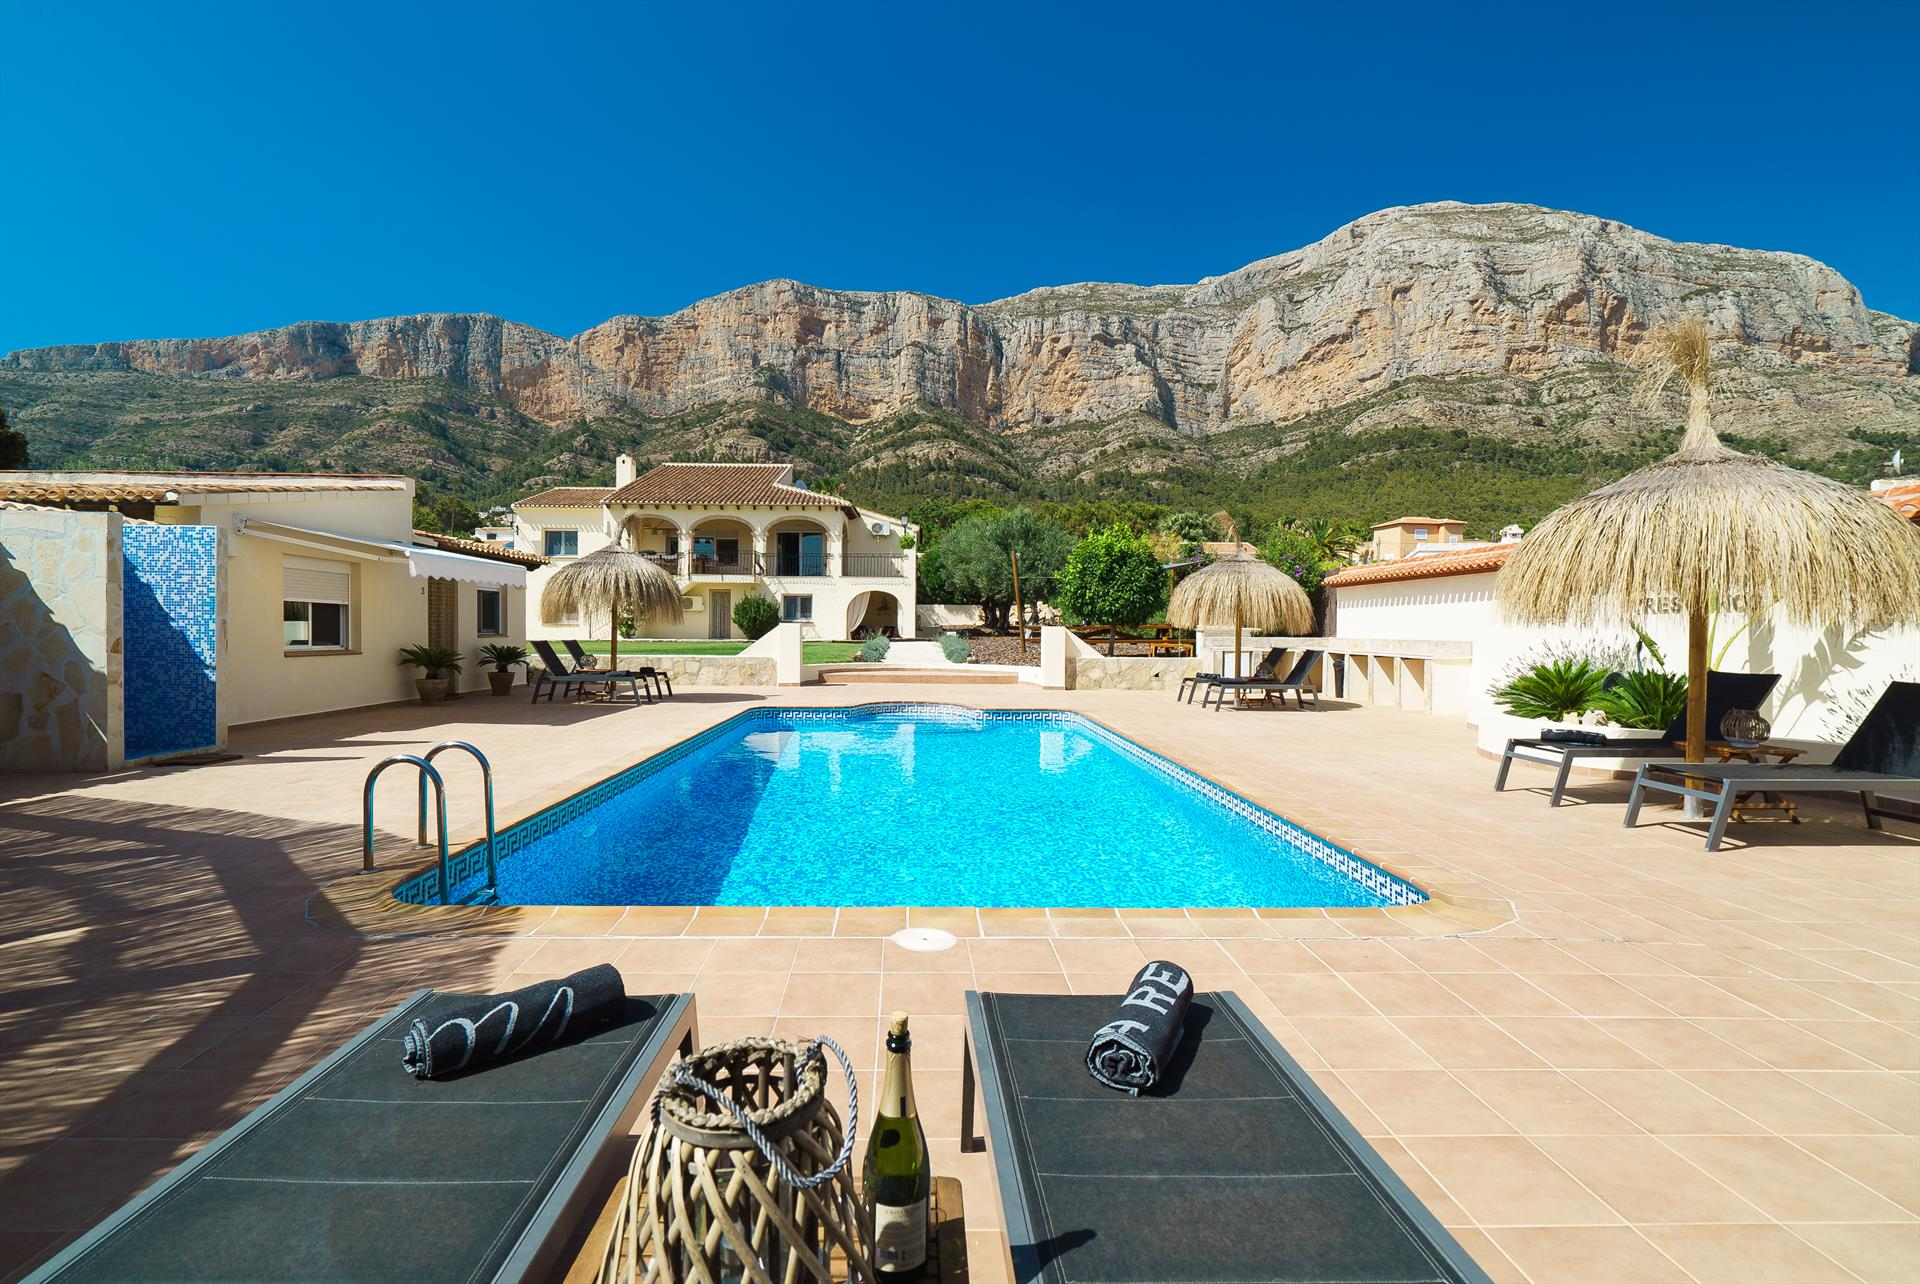 Tres Ninos 10 pax, Wonderful and comfortable villa in Javea, on the Costa Blanca, Spain  with private pool for 10 persons.....